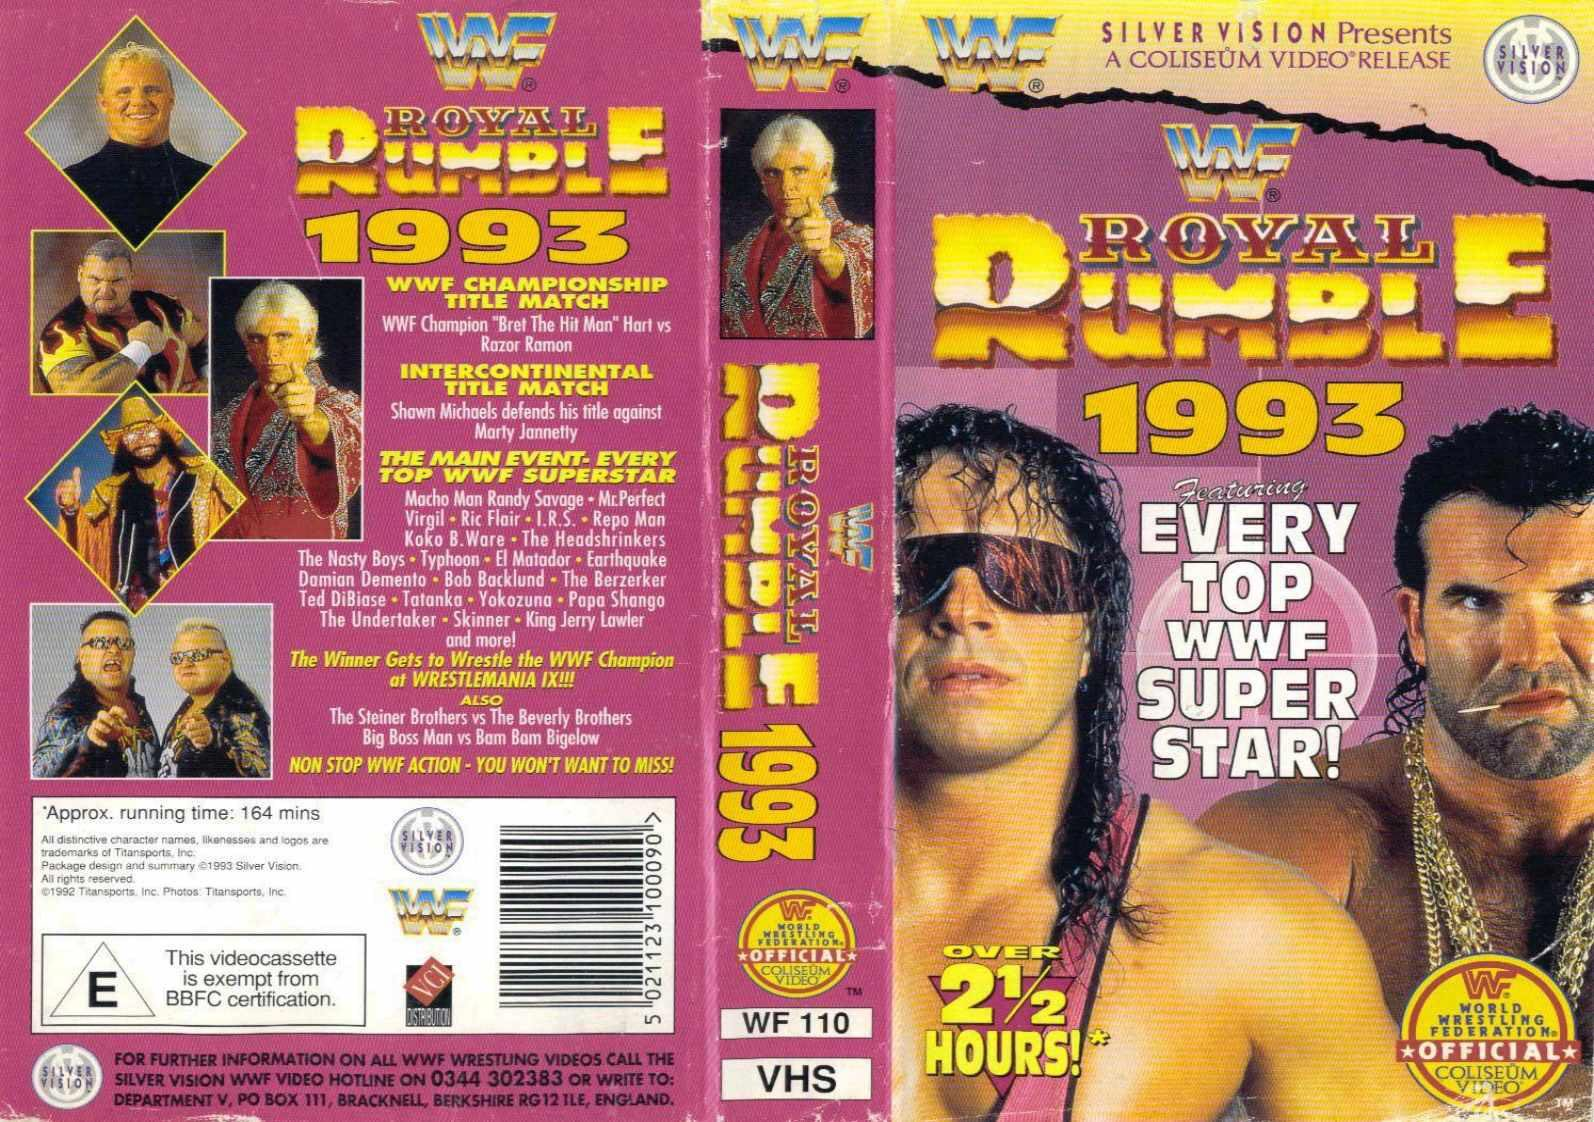 @UTTRob wore this VHS out - why o why did @ShawnMichaels put Marty Jannetty through that window �� https://t.co/wlp1Sq1wpW